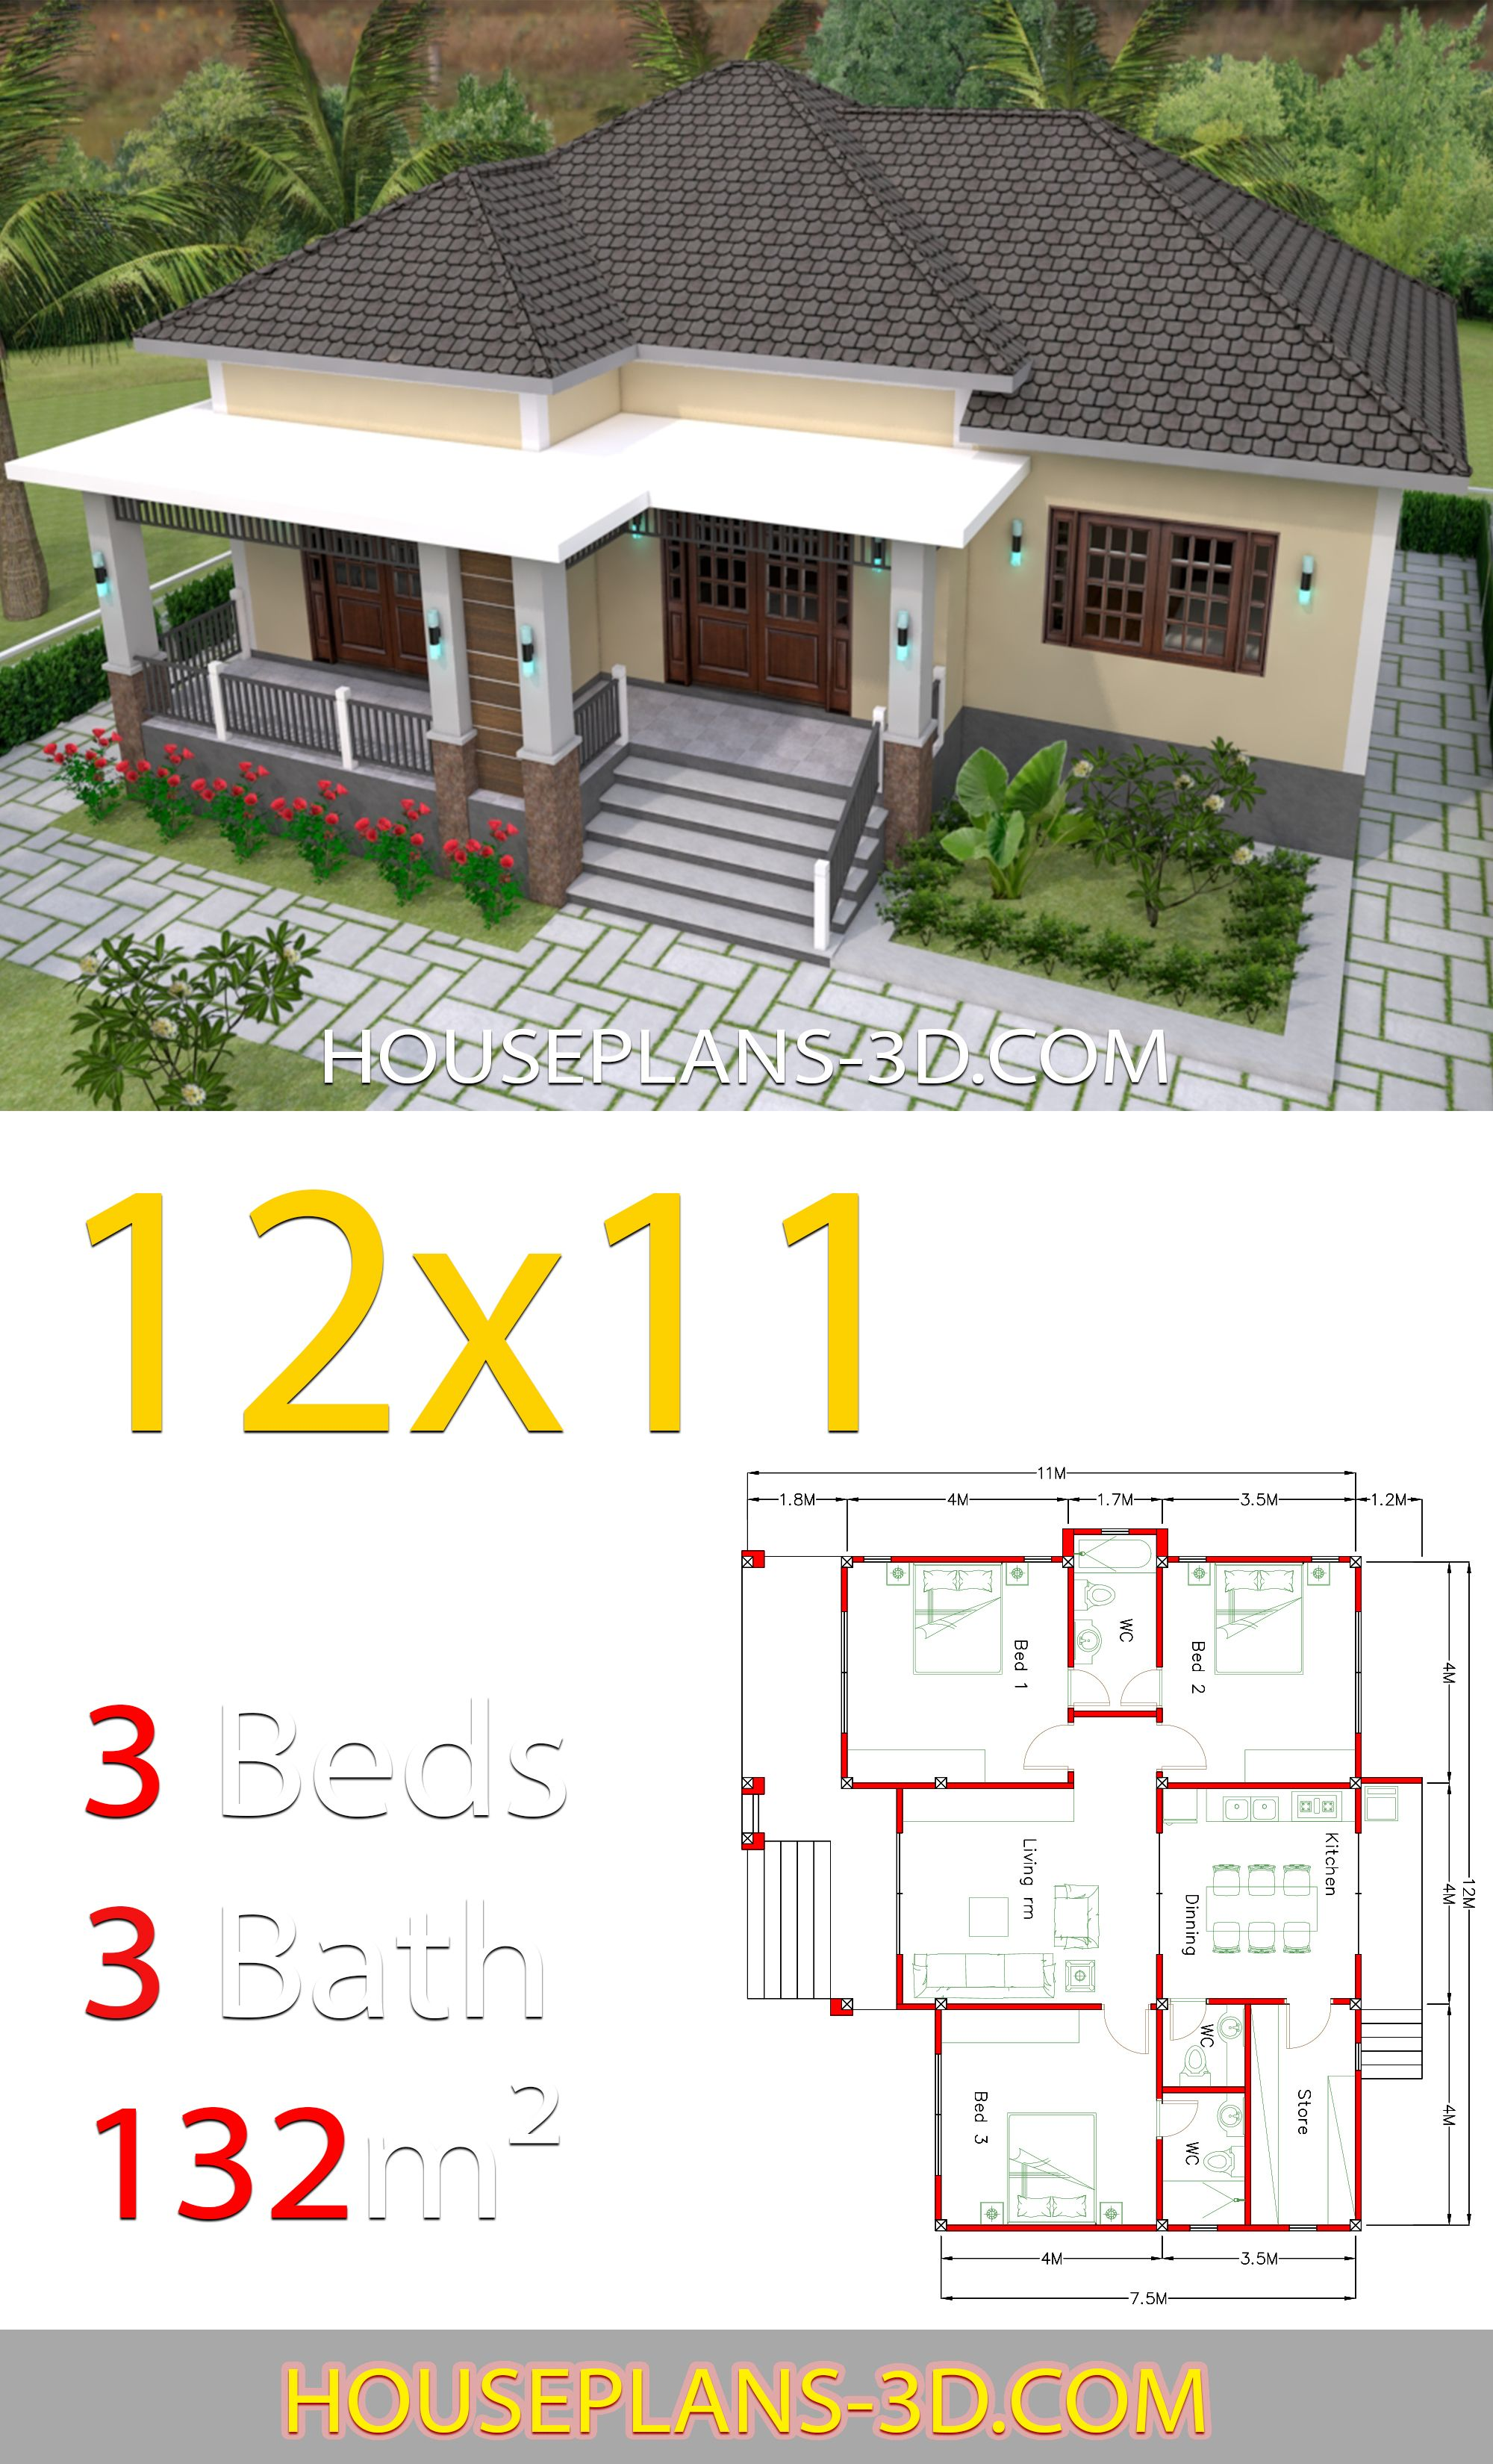 Home Design 12x11 With 3 Bedrooms Hip Roof House Plans 3d In 2020 House Construction Plan Architectural House Plans Model House Plan